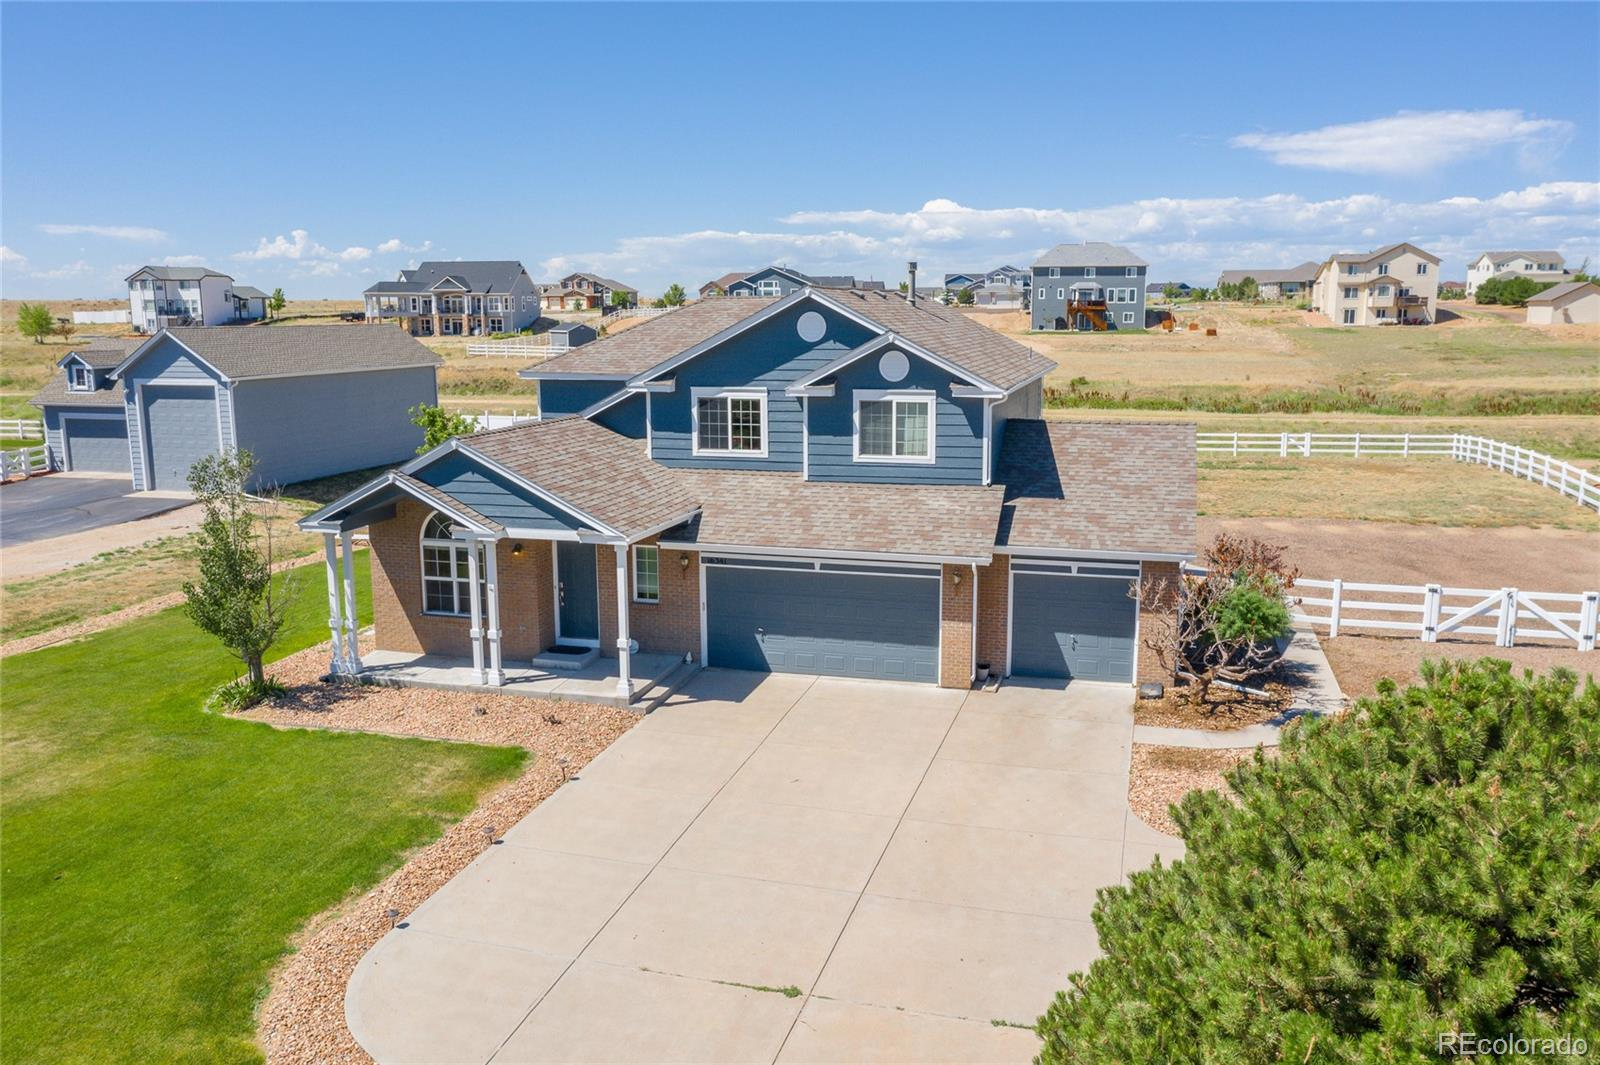 MLS# 4446332 - 28 - 16341 Timber Cove Street, Hudson, CO 80642